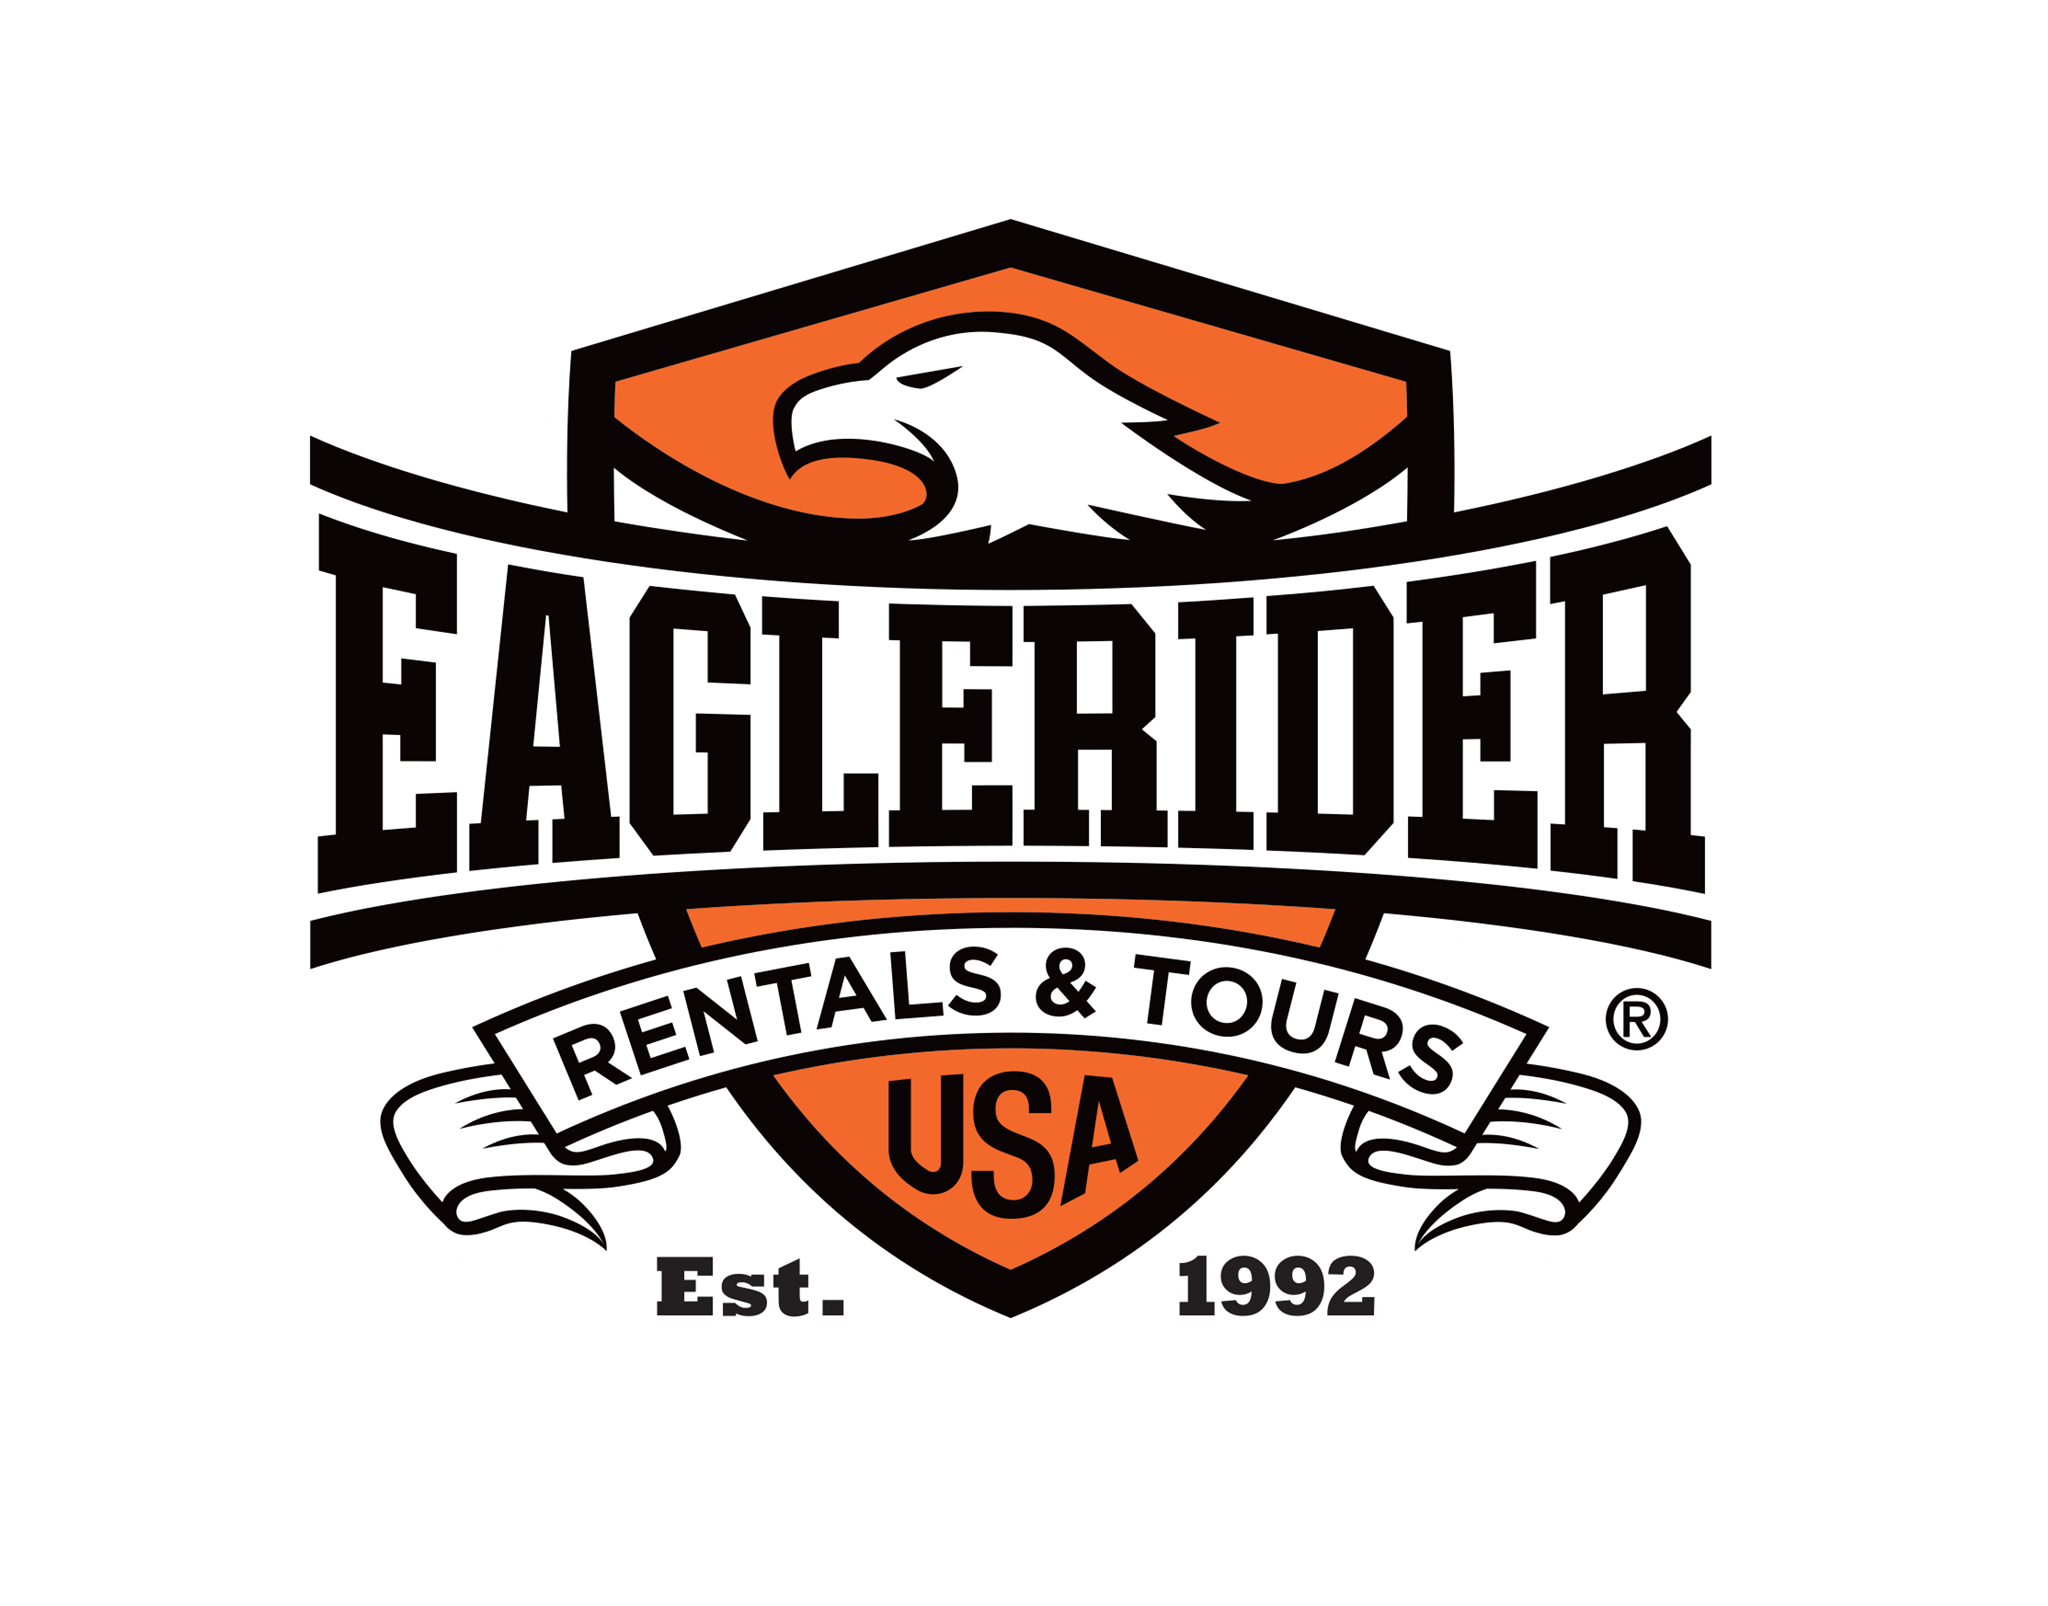 EagleRider Los Angeles - Logo